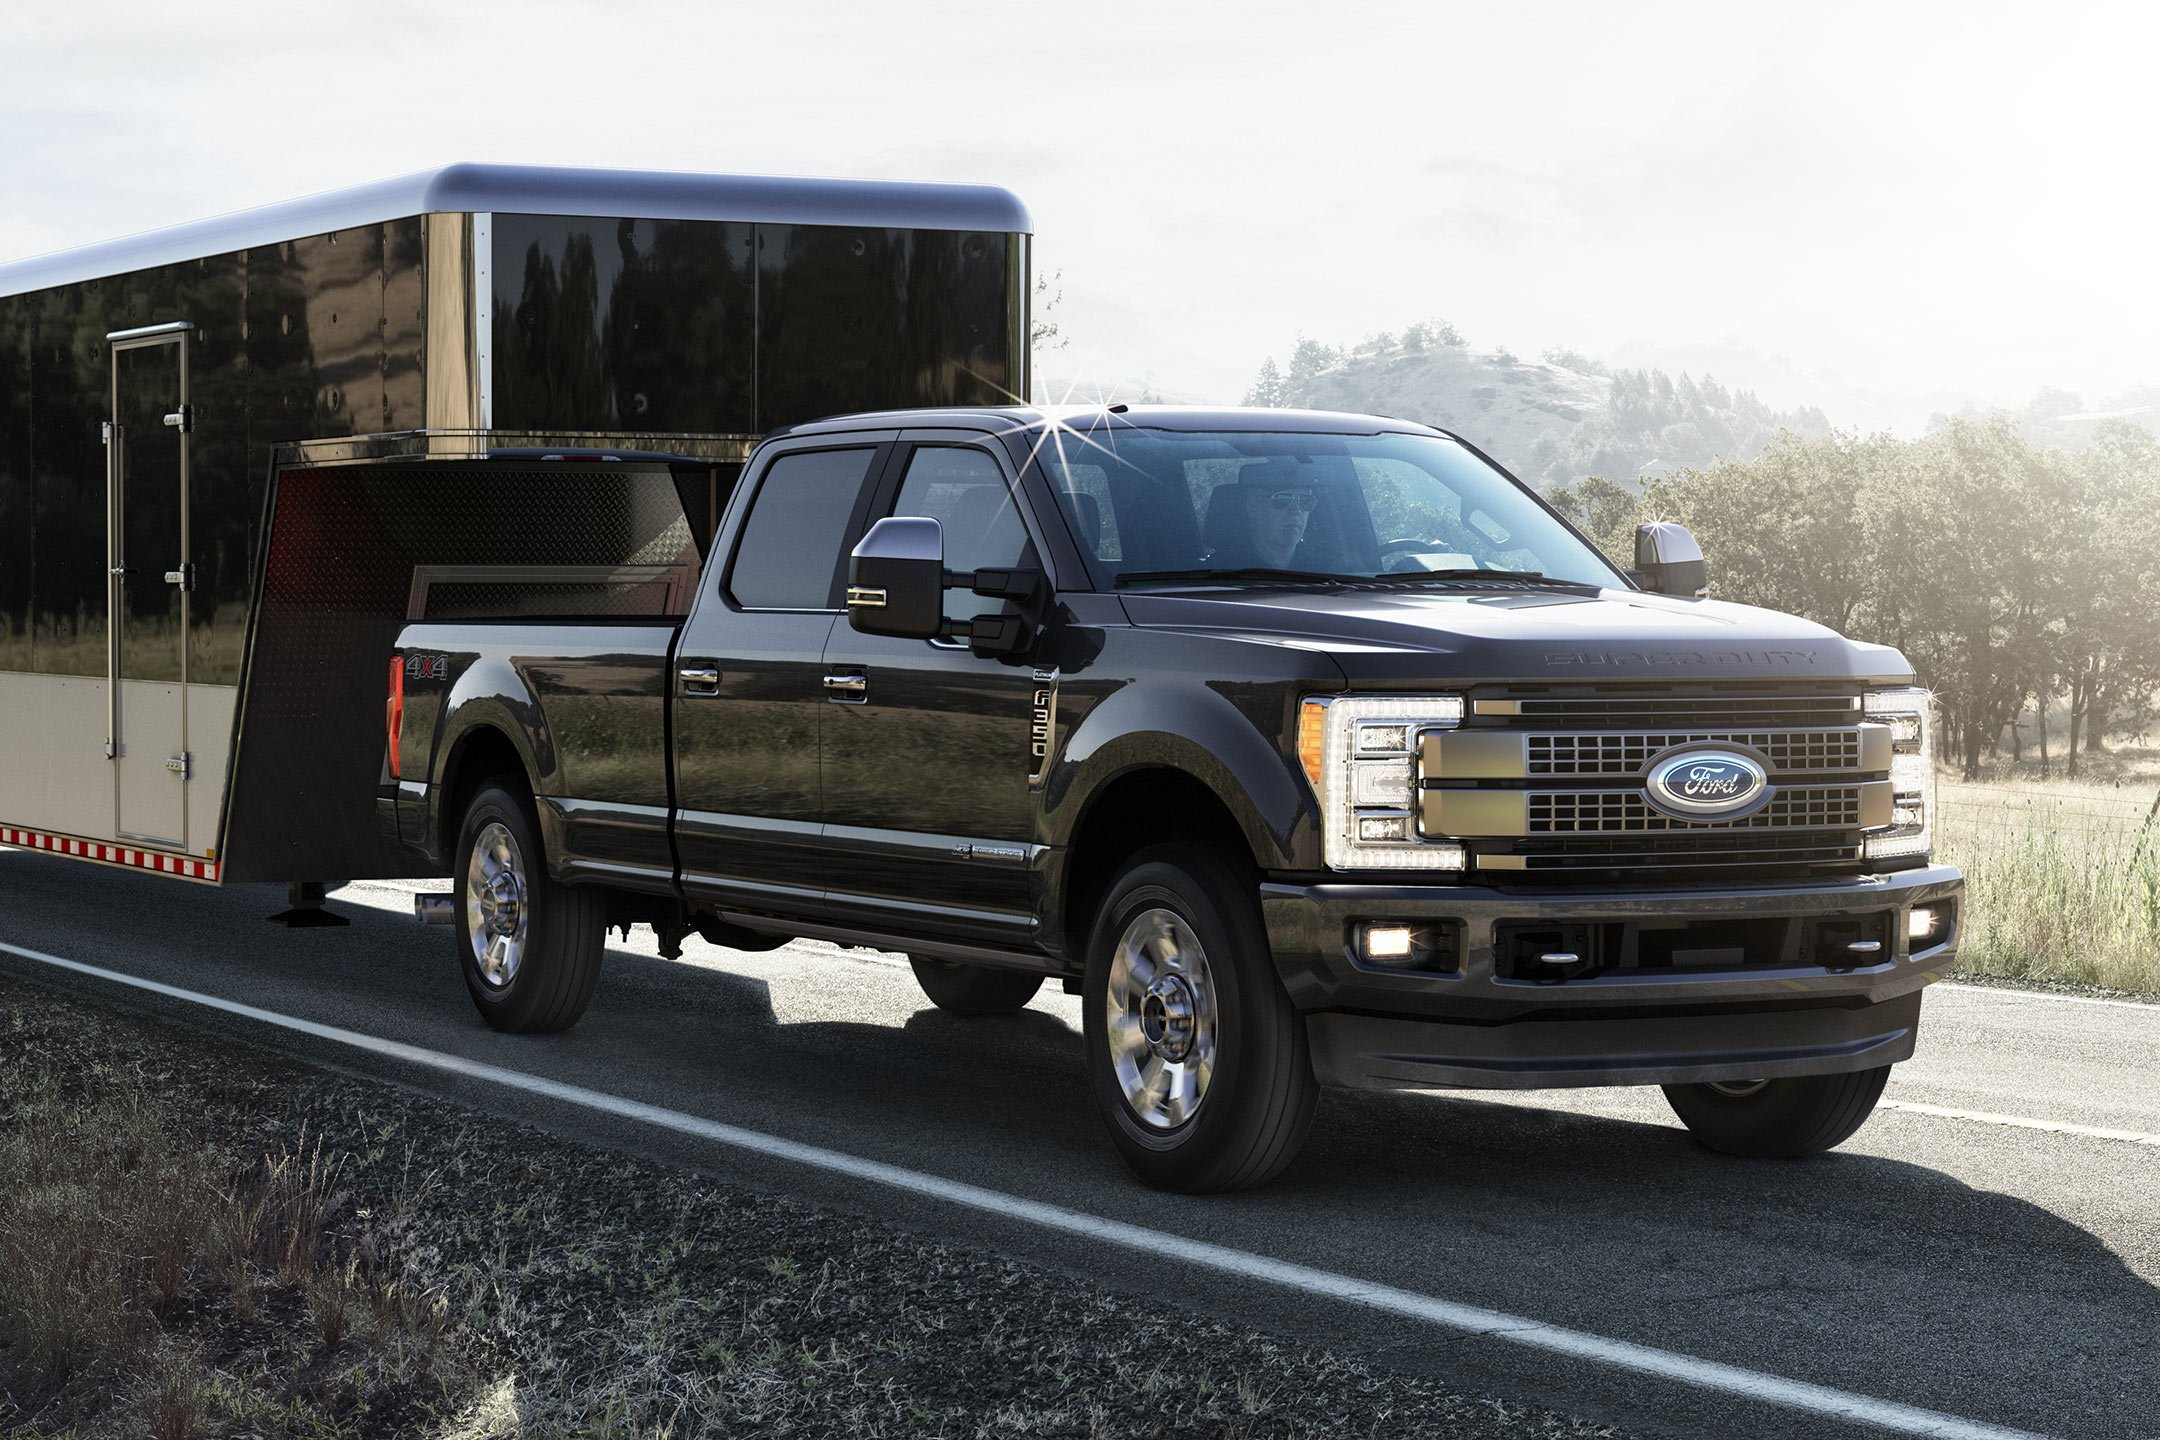 Ford F 350 Lease Prices Finance Offers Near New Prague Mn Diesel Fuel Filter Location For Sale At Jeff Belzers